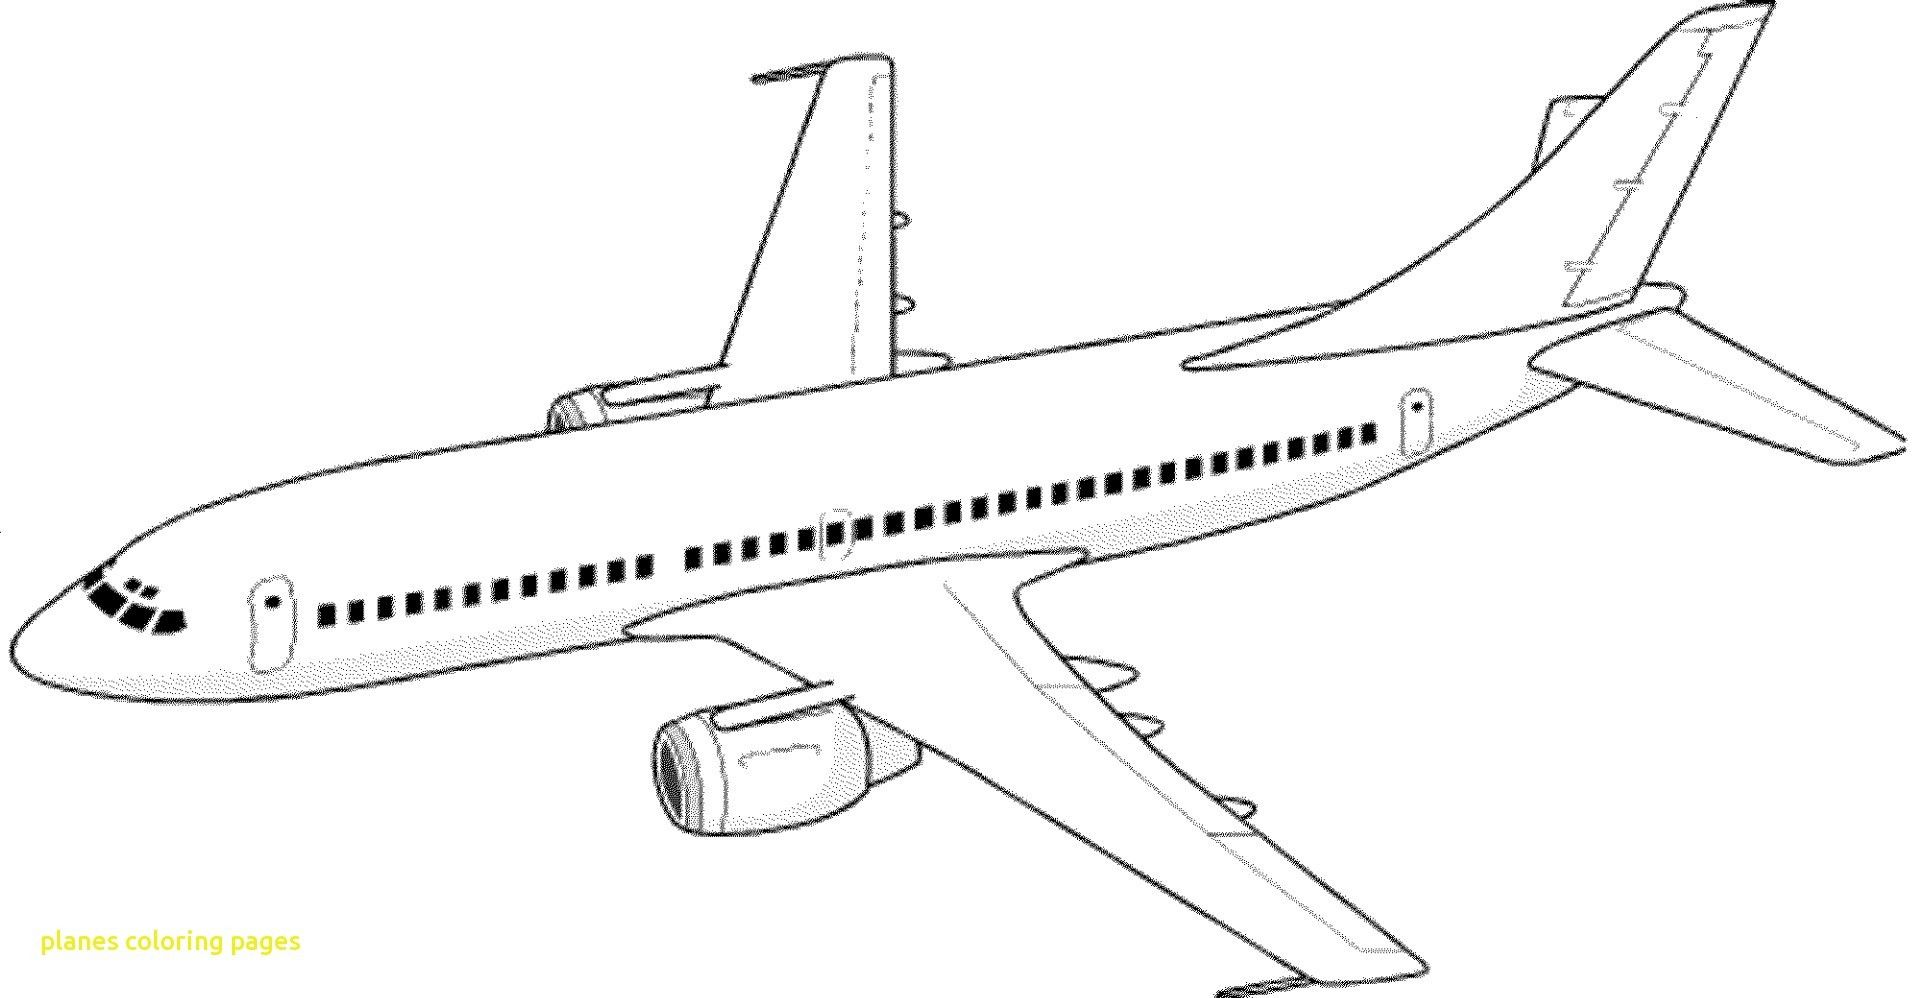 Jet Coloring Pages Energy Blue Angel Jet Coloring Pages Planes With Aeroplane Colouring Entitlementtrap Com Airplane Coloring Pages Coloring Pages To Print Coloring Pages For Kids